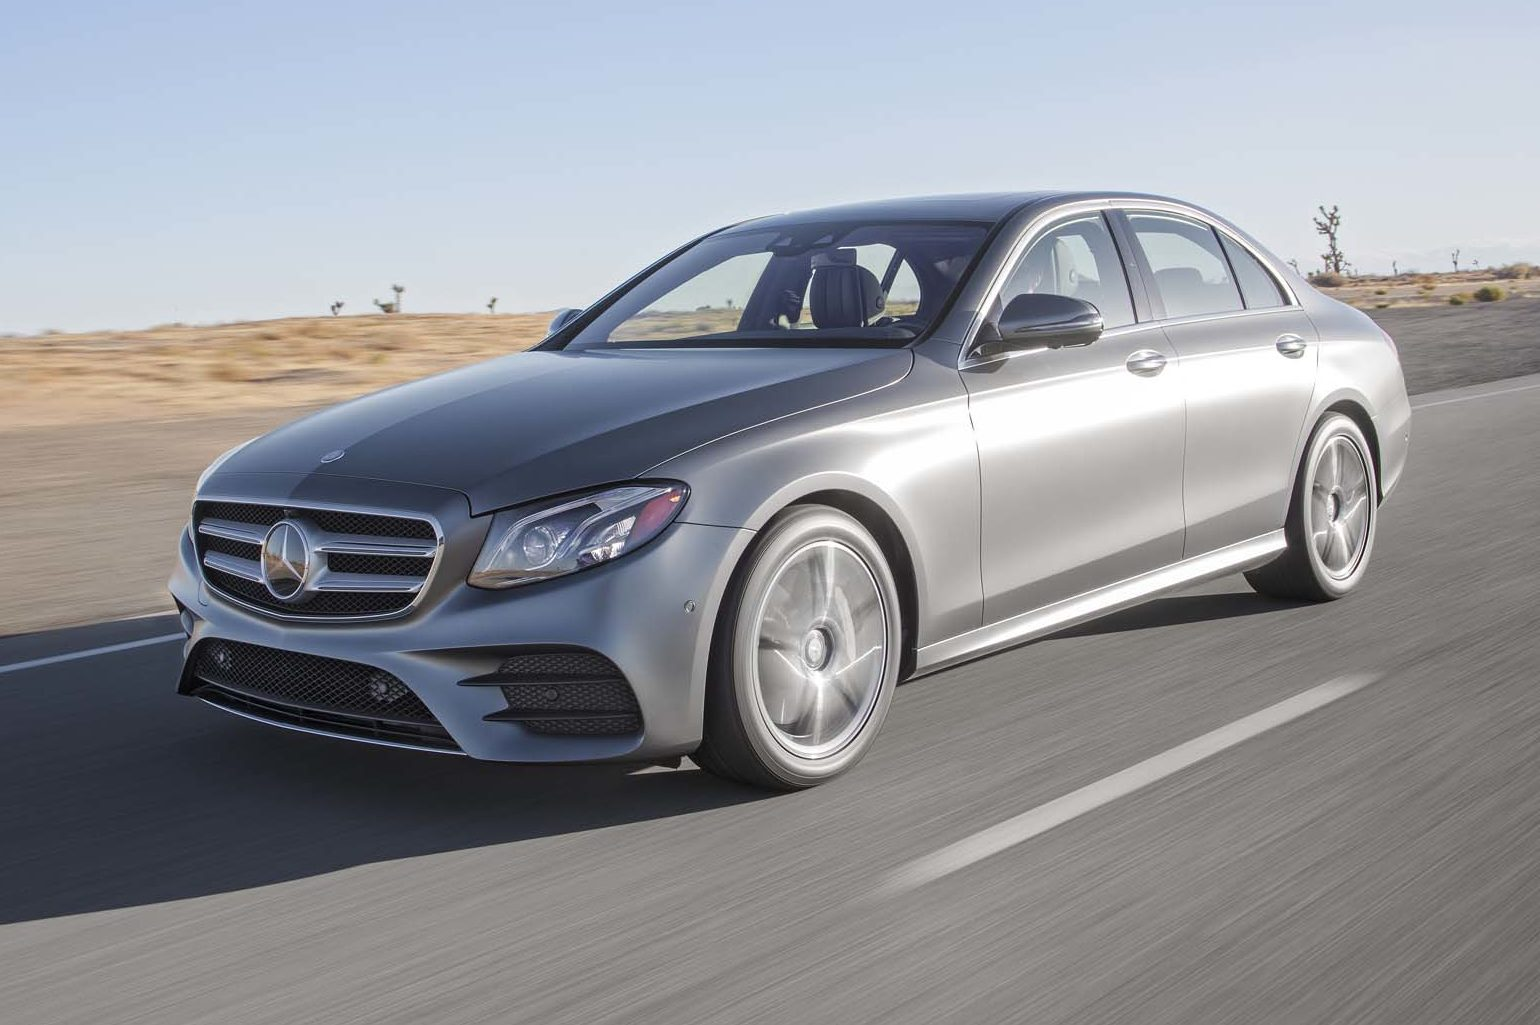 2017 Mercedes Benz E300 Front Three Quarter In Motion E1477933989926